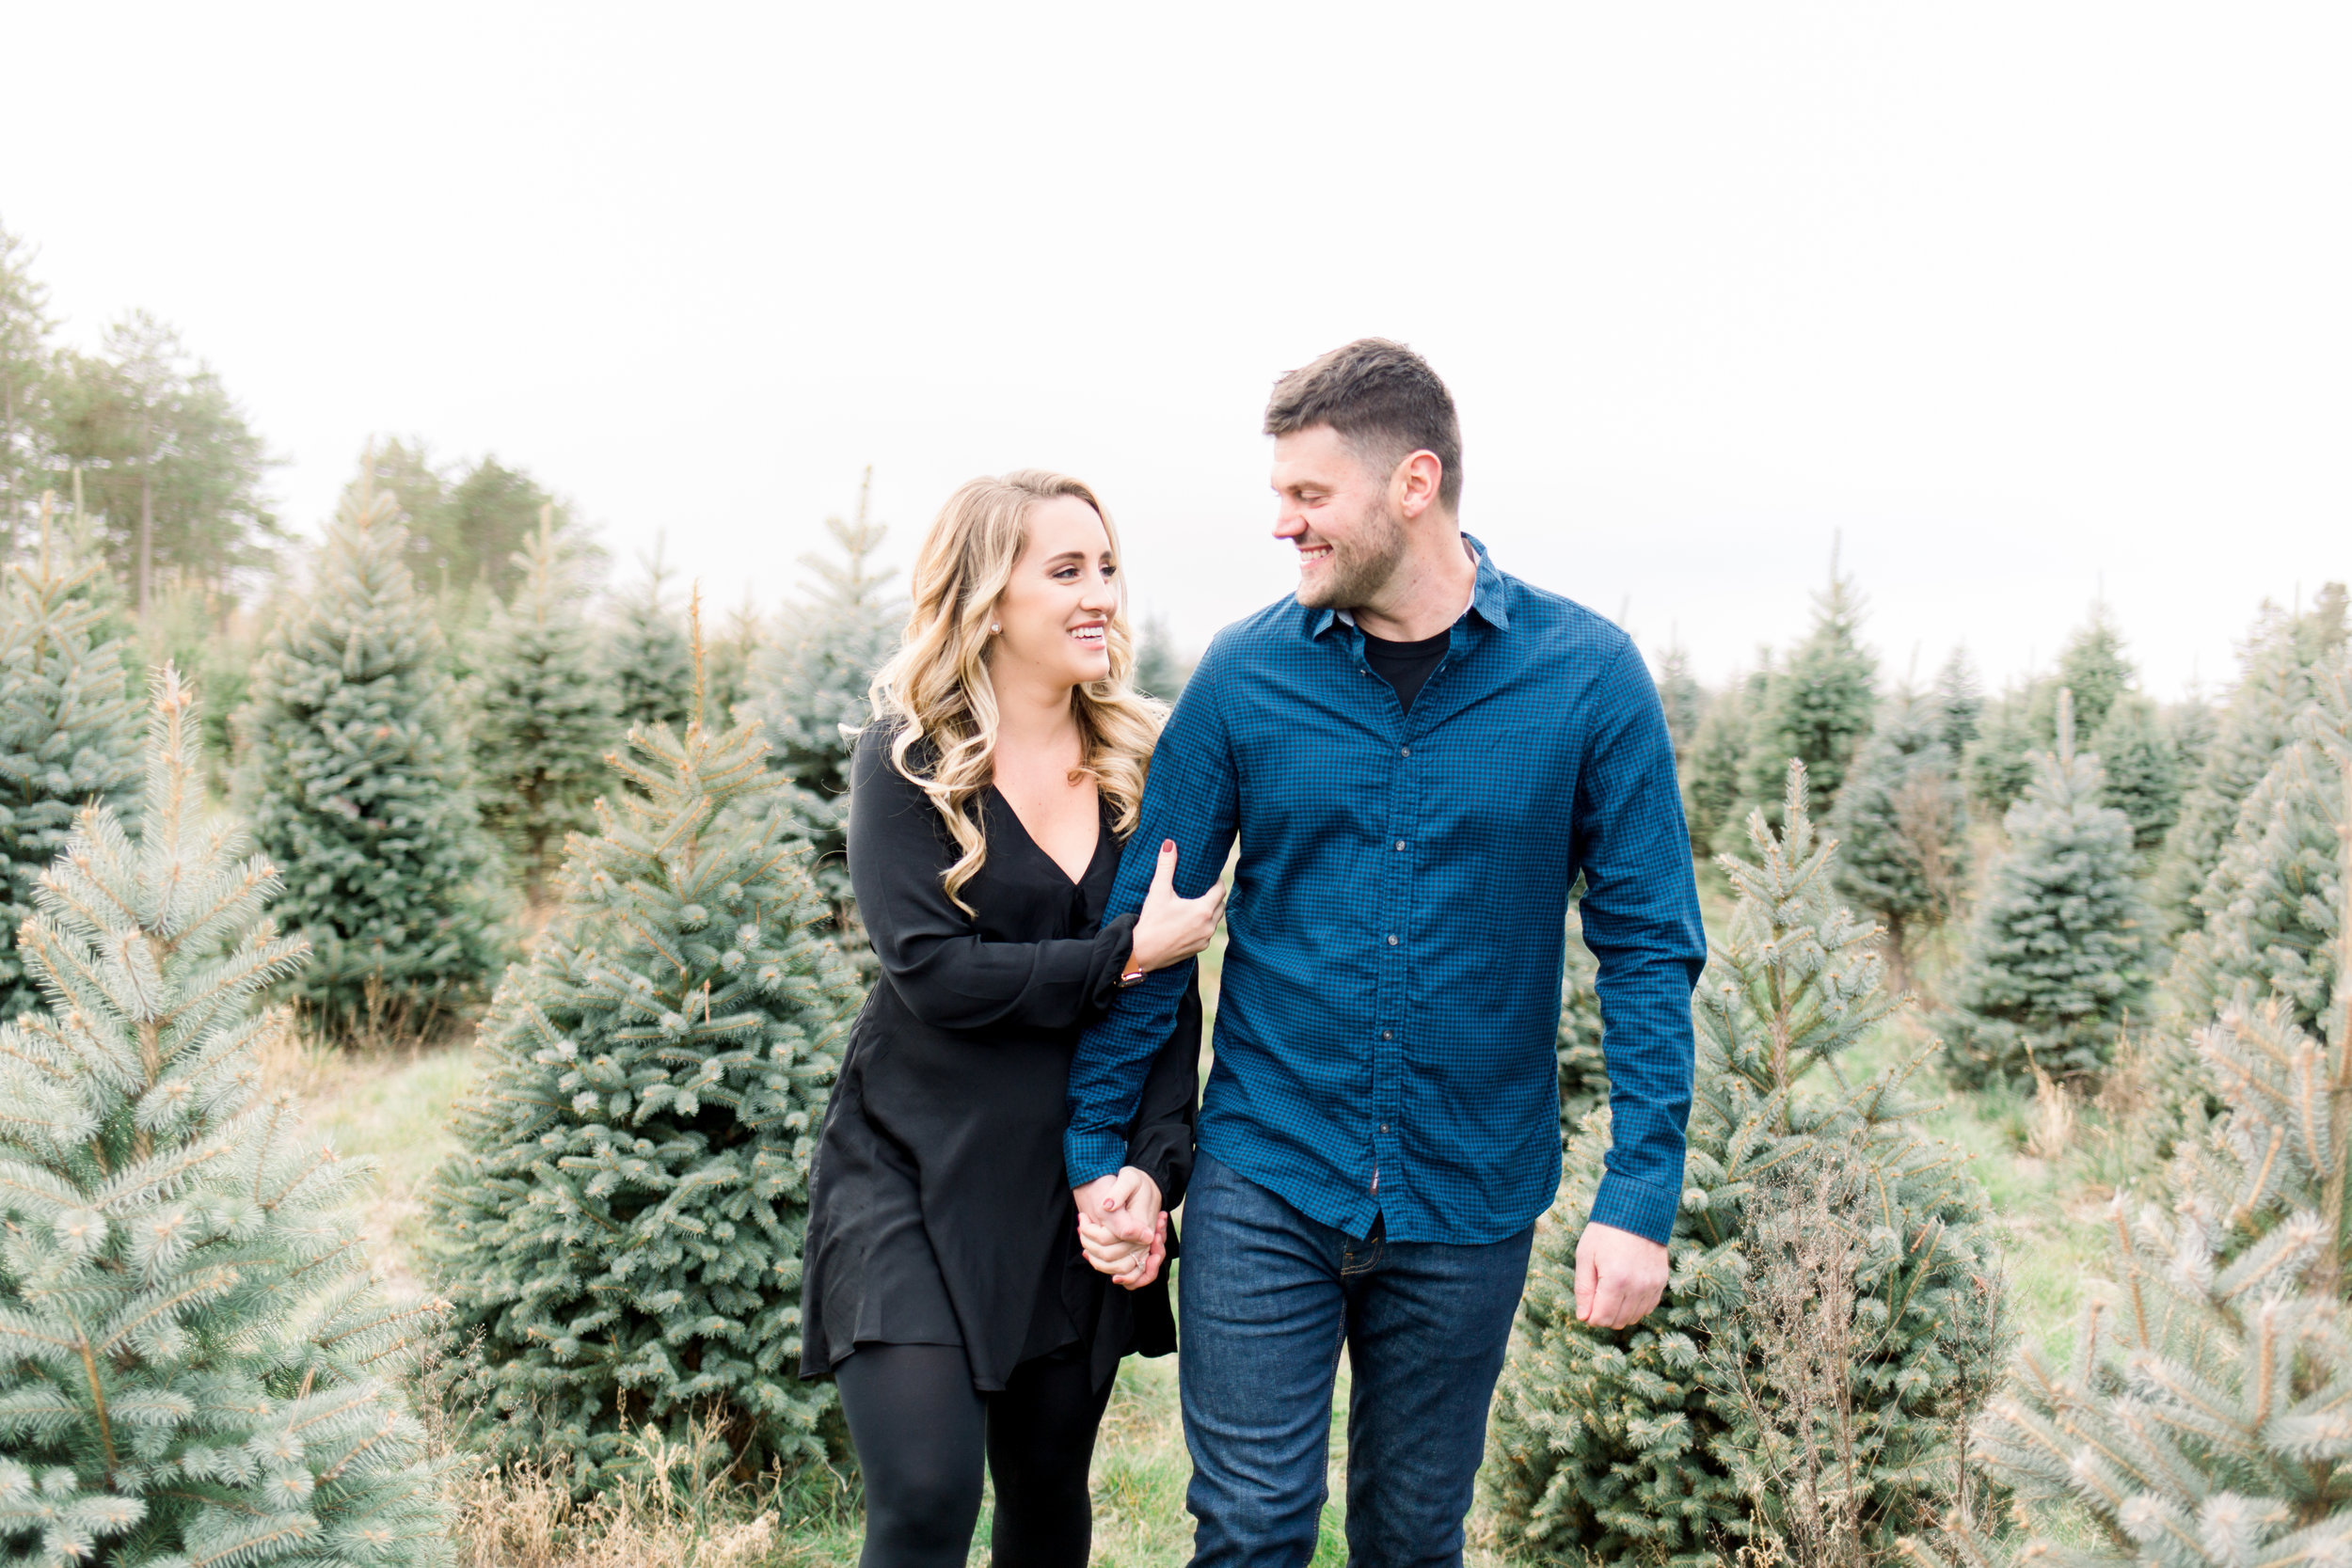 Fall Tree Farm Engagement Session by Minneapolis Wedding Photographer Chelsea Bolling